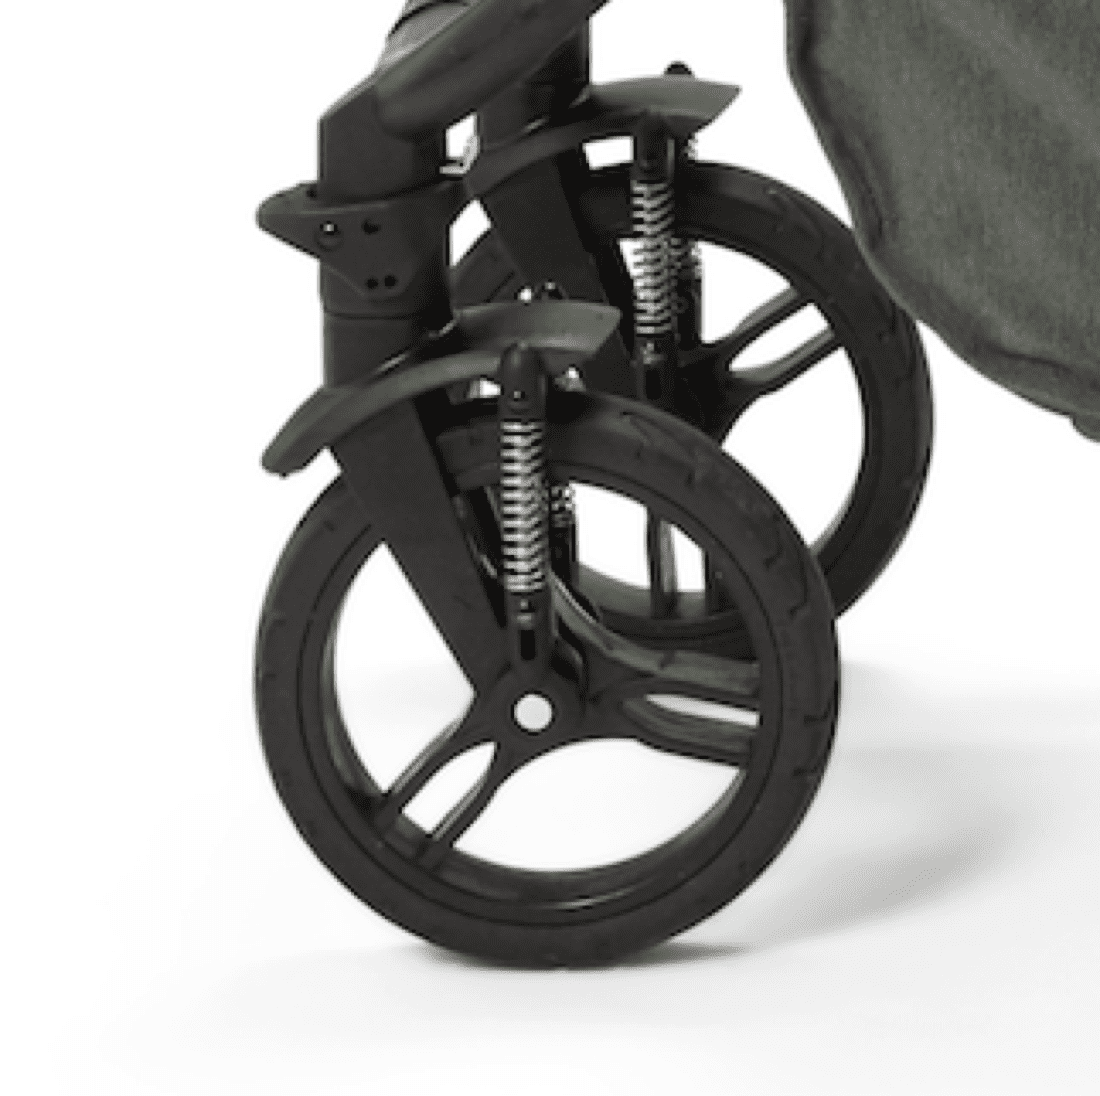 Cupla Duo Front Wheel – Each product image